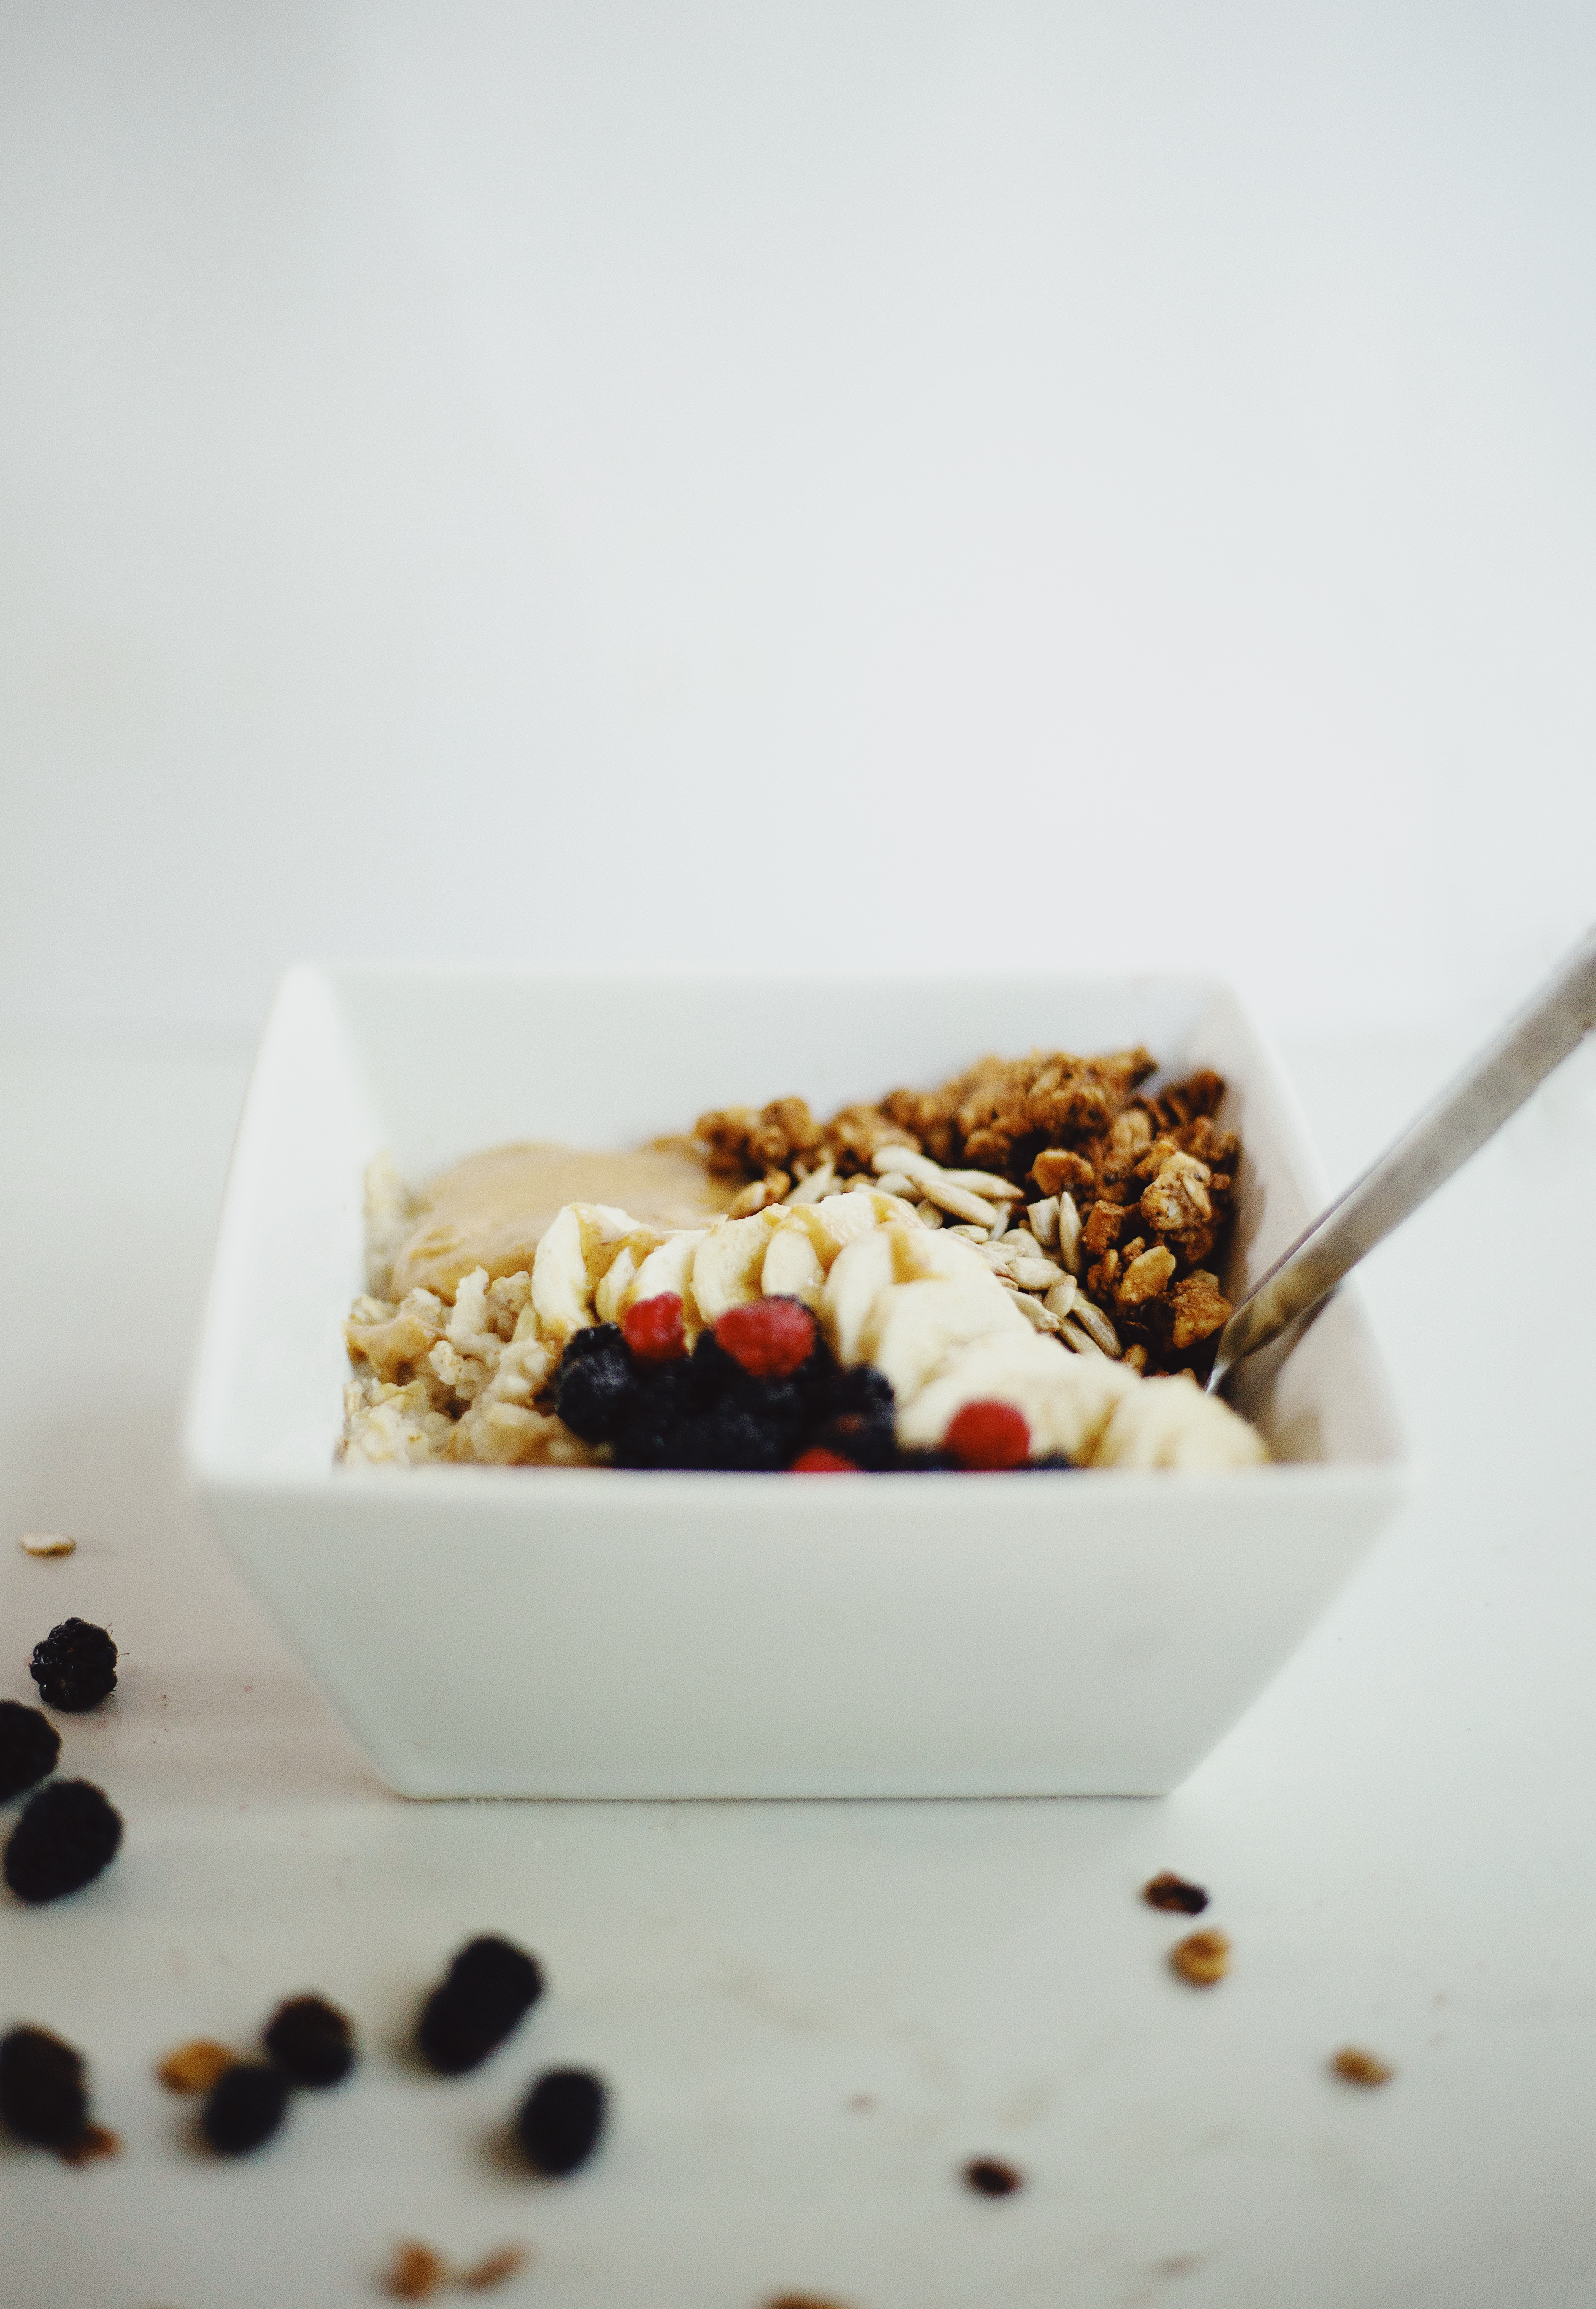 Creamy Microwave Oatmeal Recipe by The Local Sprout